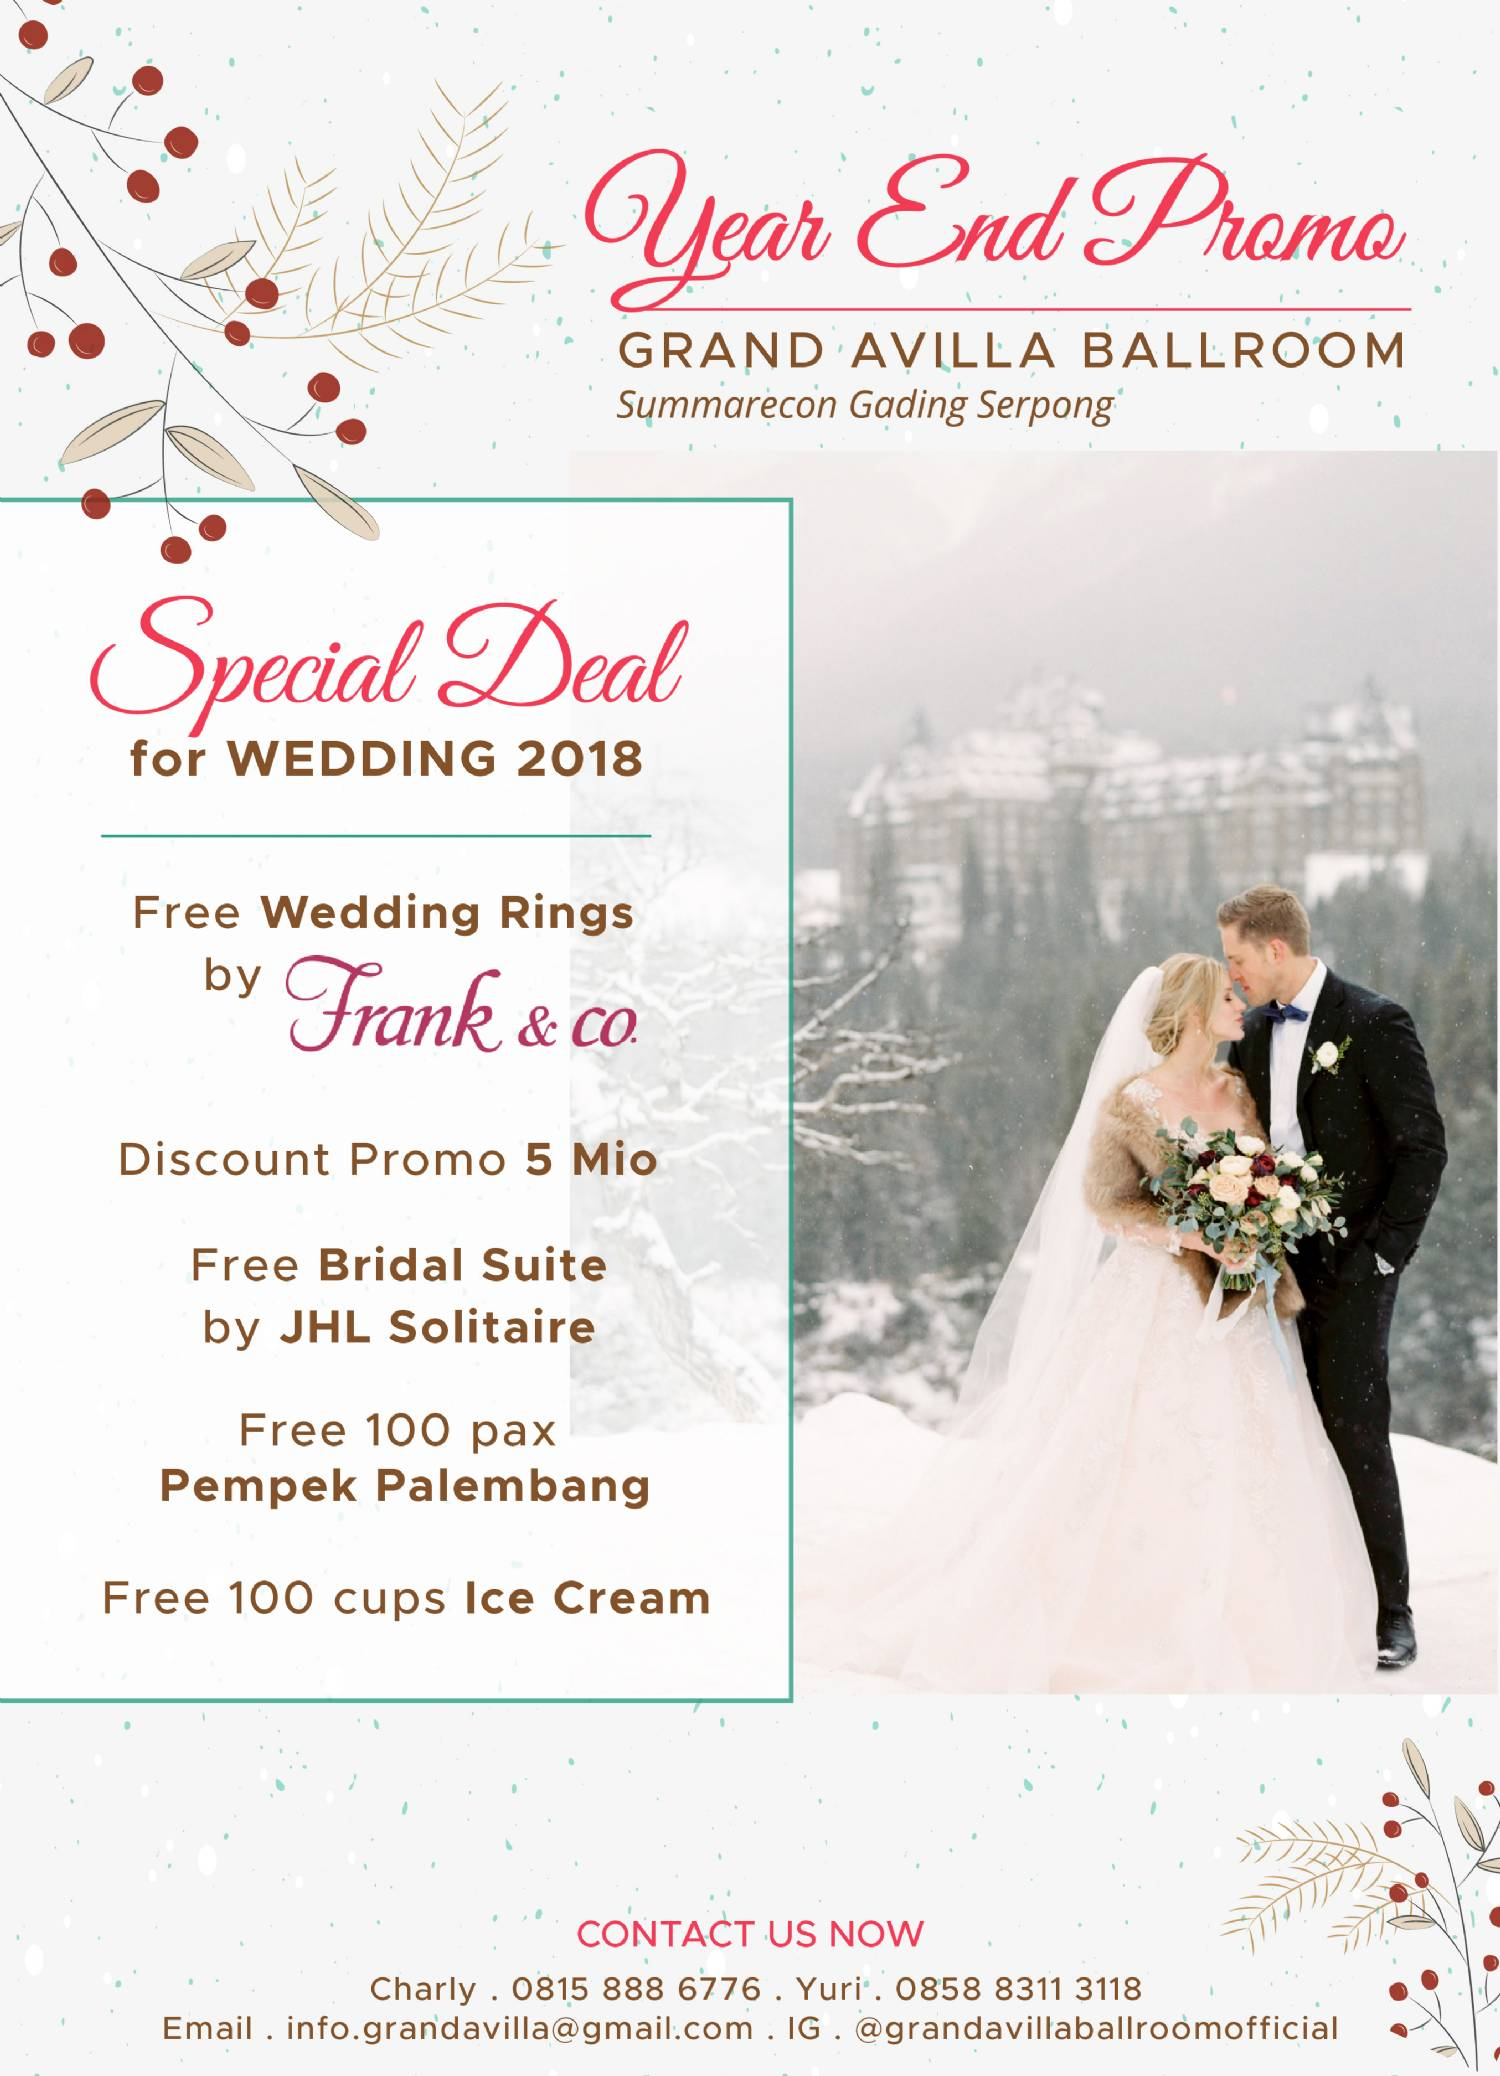 Year-End Promo Grand Avilla Ballroom - Weddingku com